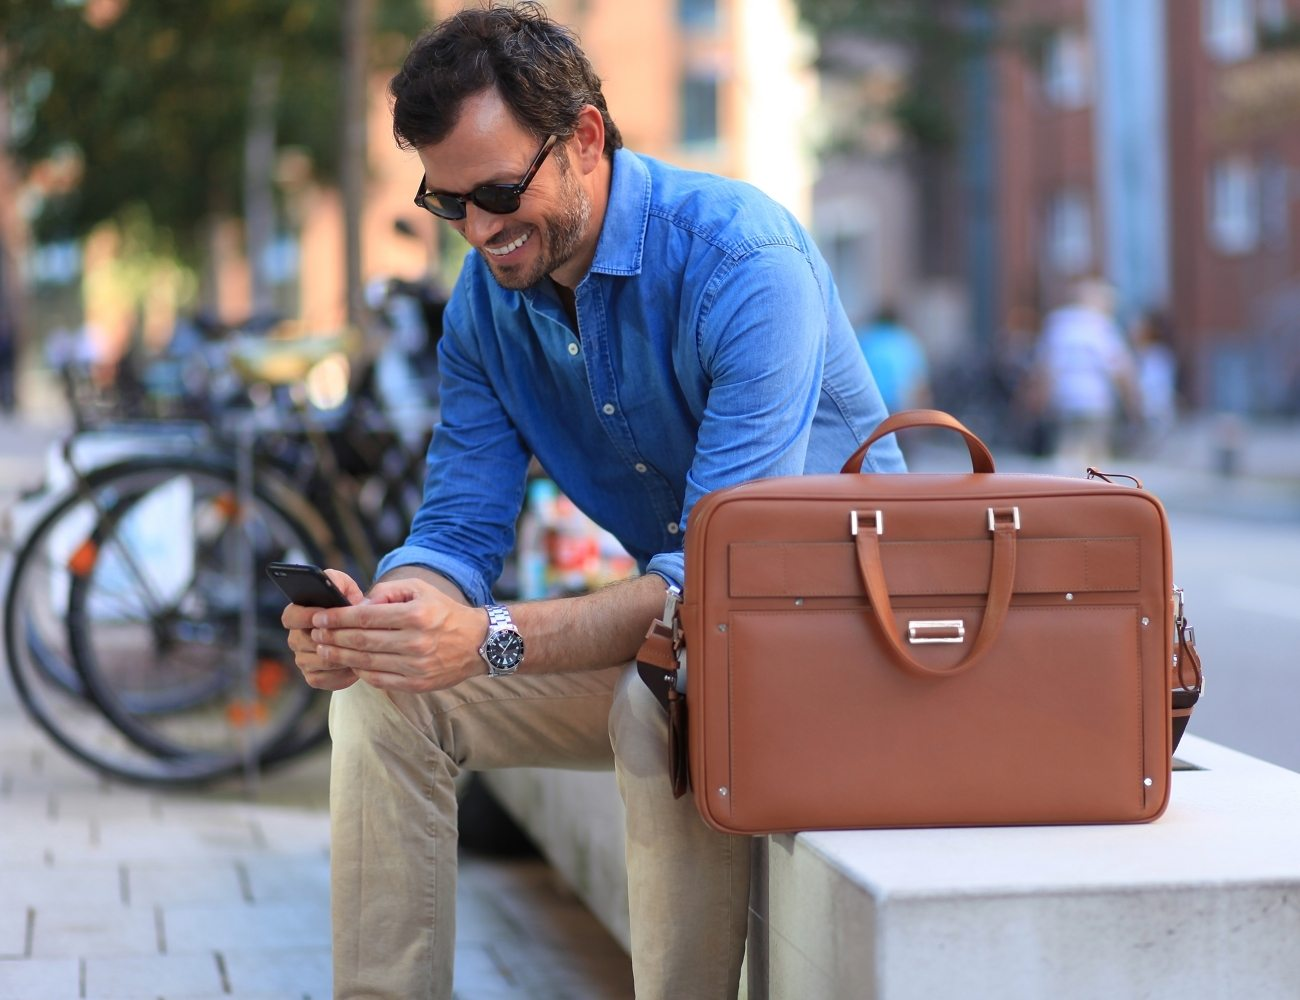 THE+WINGCASE+%26%238211%3B+The+Smartest+Briefcase+In+The+World